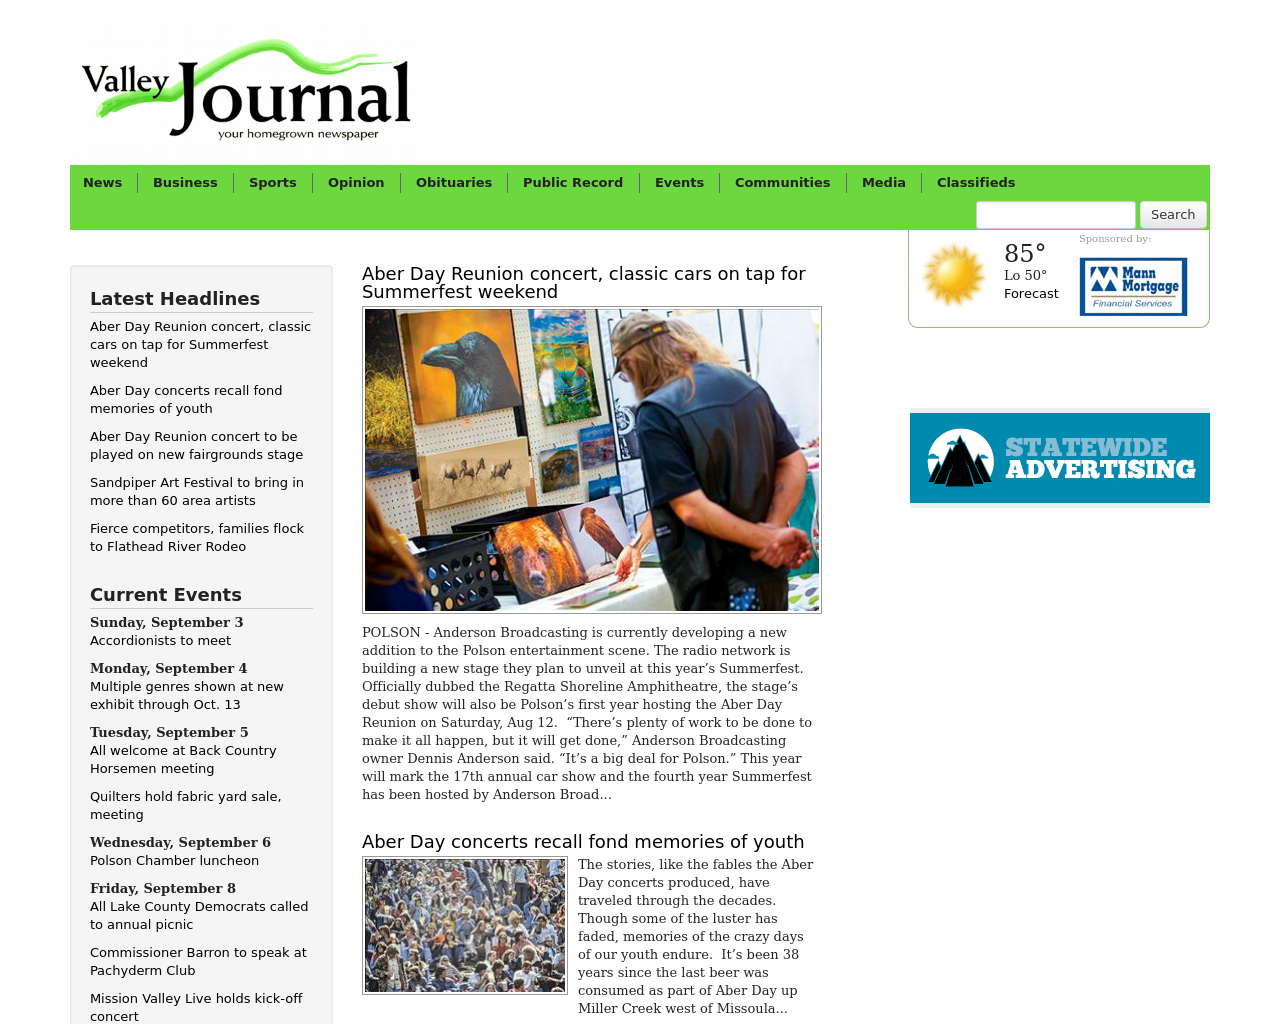 Valley-Journal-Your-Homegrown-Newspaper-Advertising-Reviews-Pricing